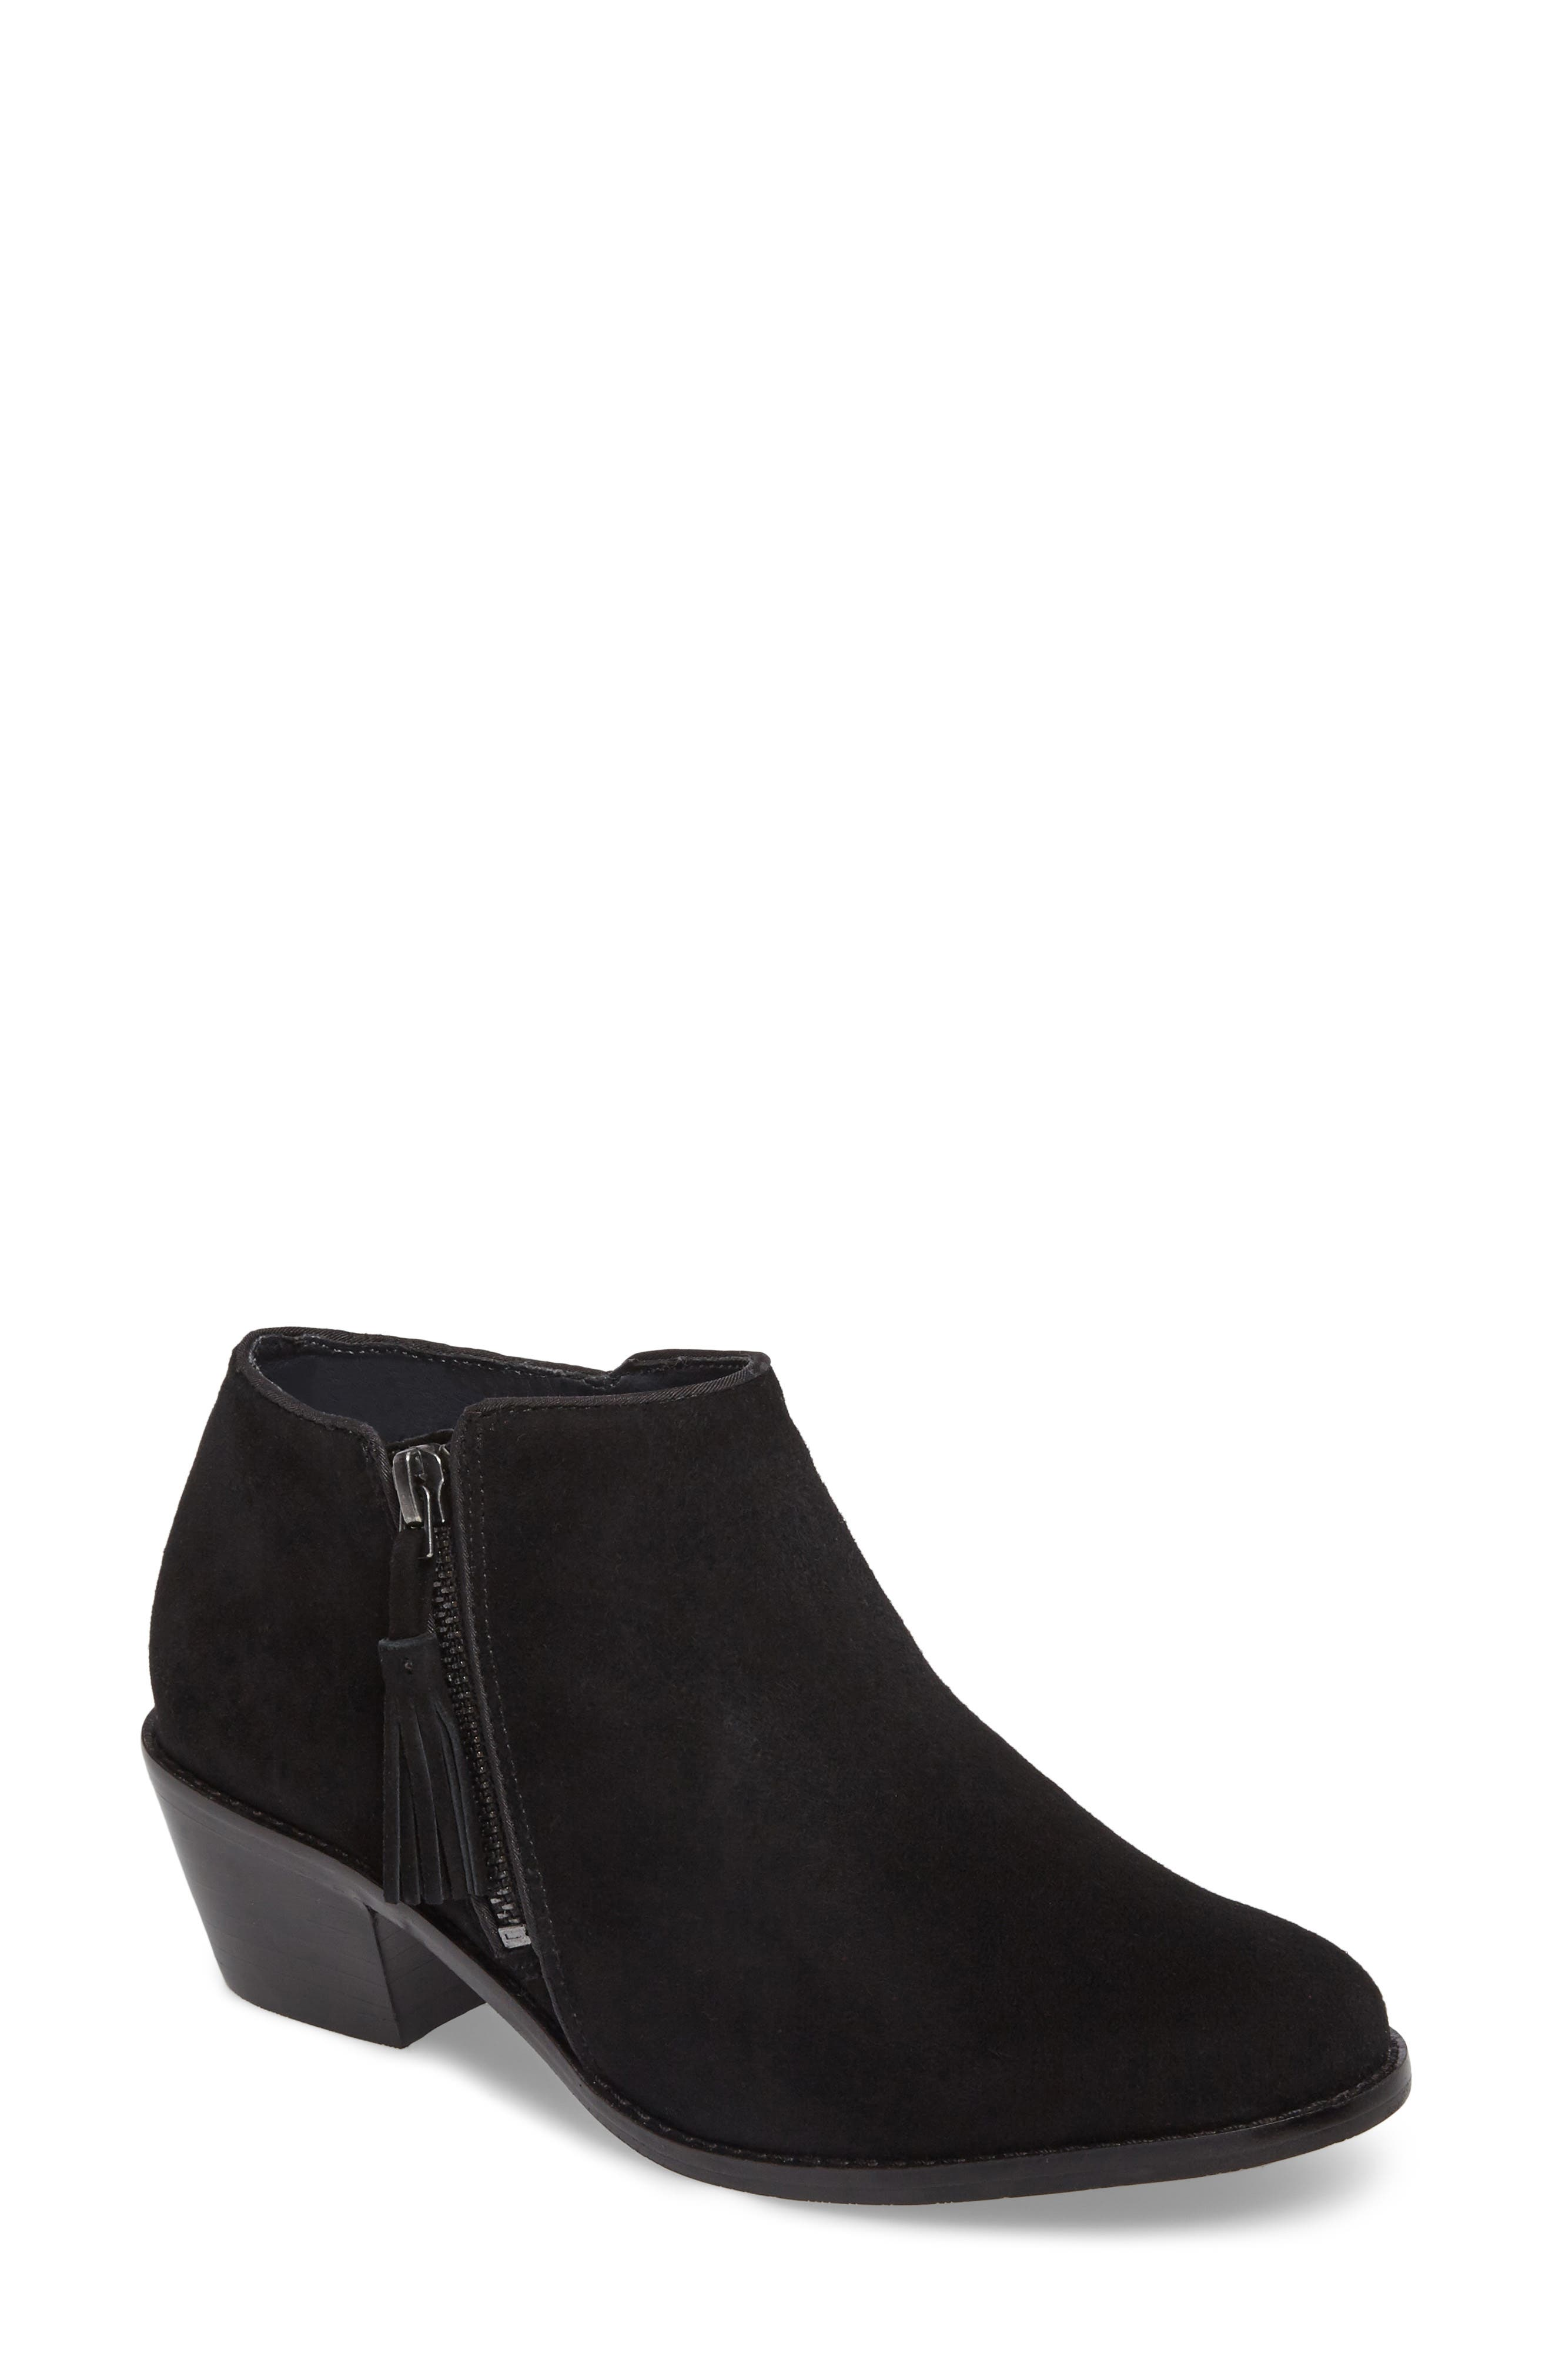 Serena Ankle Boot,                         Main,                         color, Black Suede